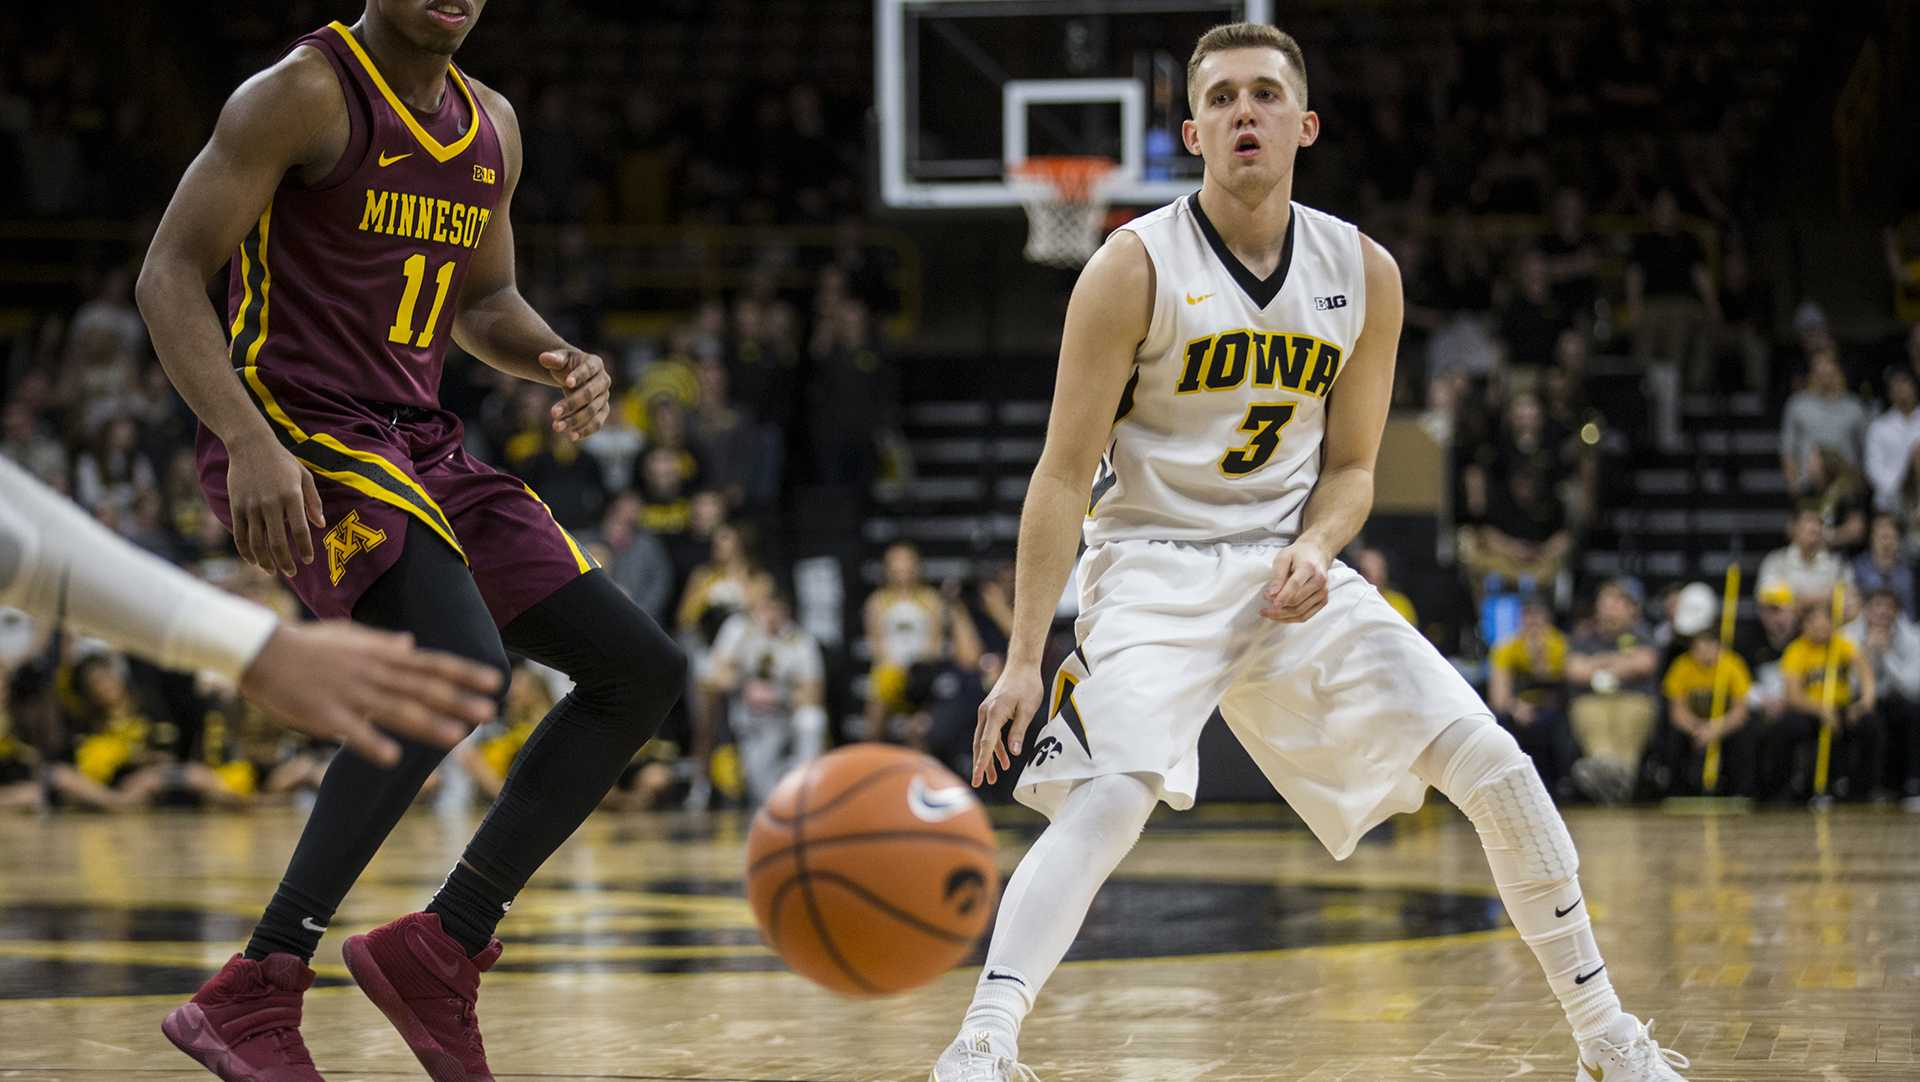 Iowa's Jordan Bohannon (3) passes the ball to a teammate during the NCAA men's basketball game between Iowa and Minnesota at Carver-Hawkeye Arena on Tuesday, Jan. 30, 2018. The Hawkeyes are going into the game with a Big Ten conference record of 2-8. Iowa went on to defeat the Golden Gophers 94-80. (Ben Allan Smith/The Daily Iowan)